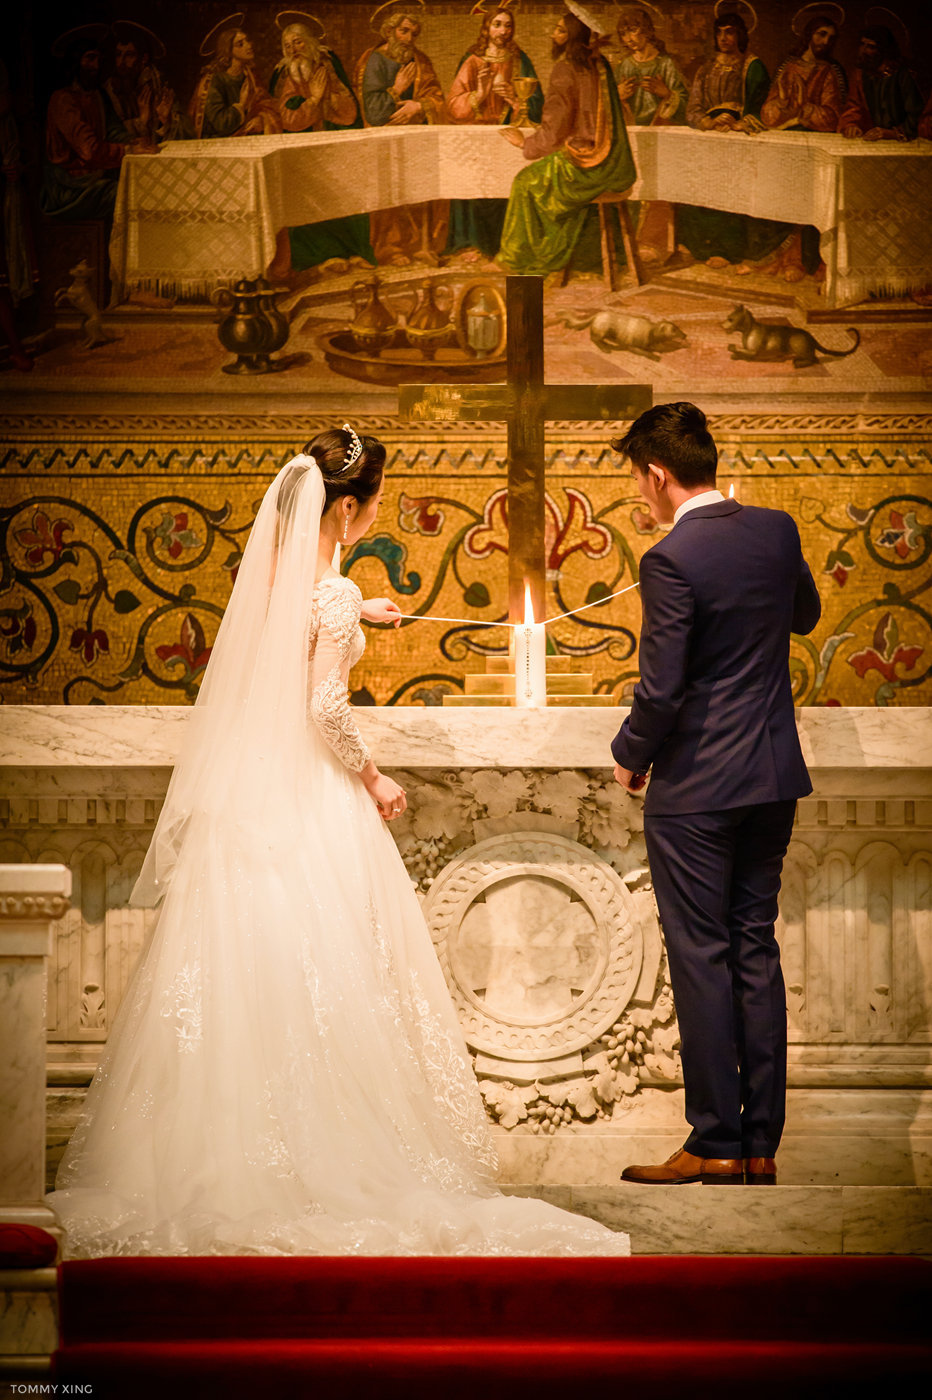 stanford memorial church wedding 旧金山湾区斯坦福教堂婚礼 Tommy Xing Photography 076.jpg